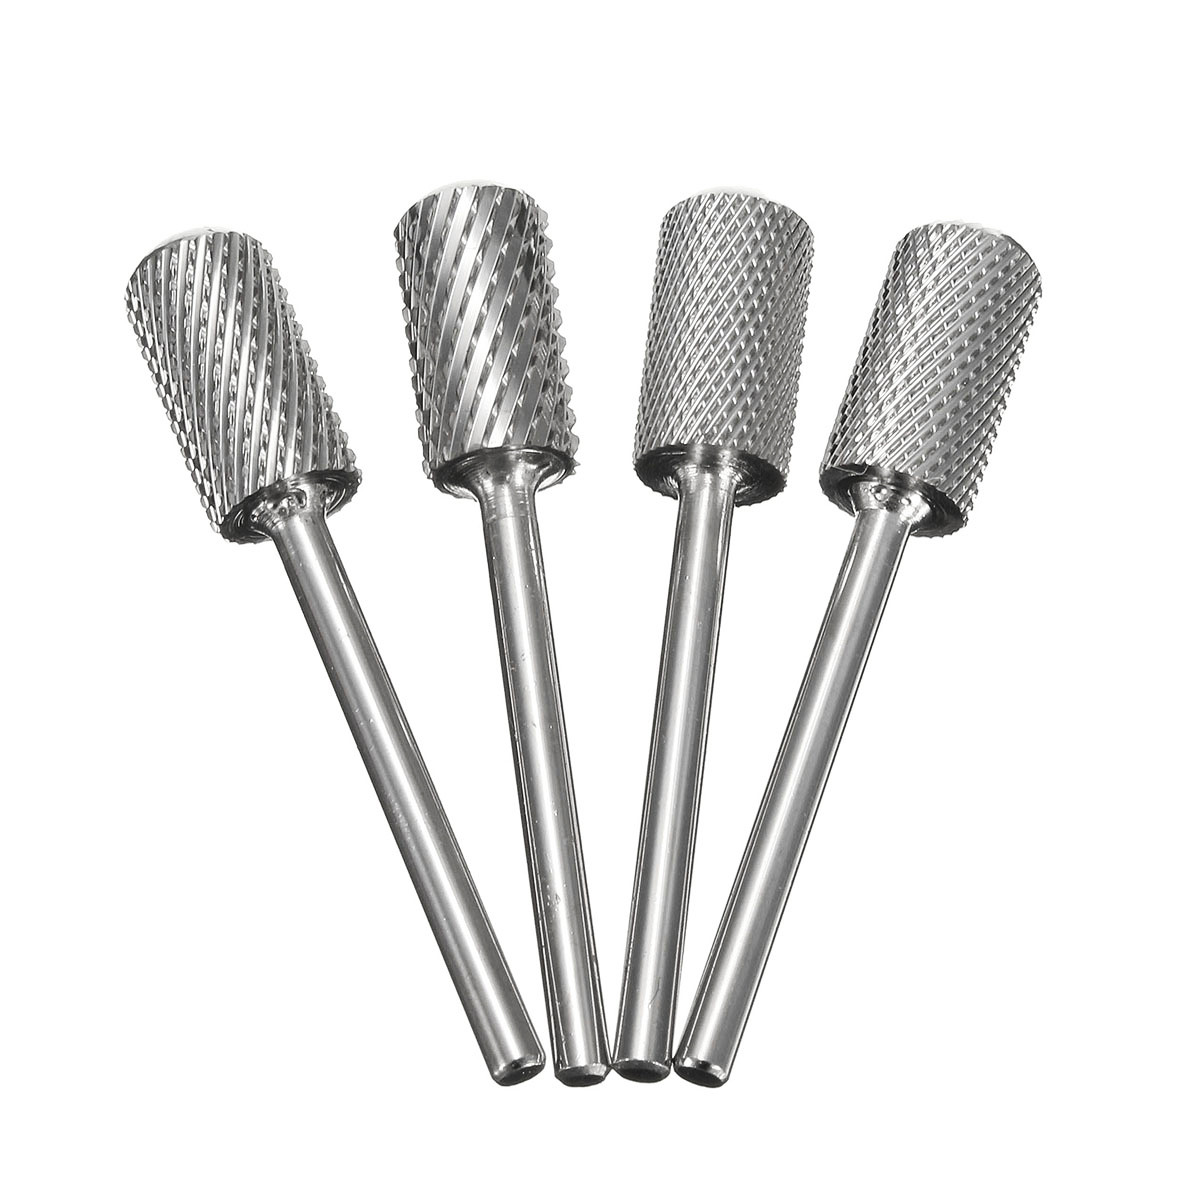 4pcs Nail Art Drill Bits Tungsten Carbide Steel Polish Electric Machine Smooth File